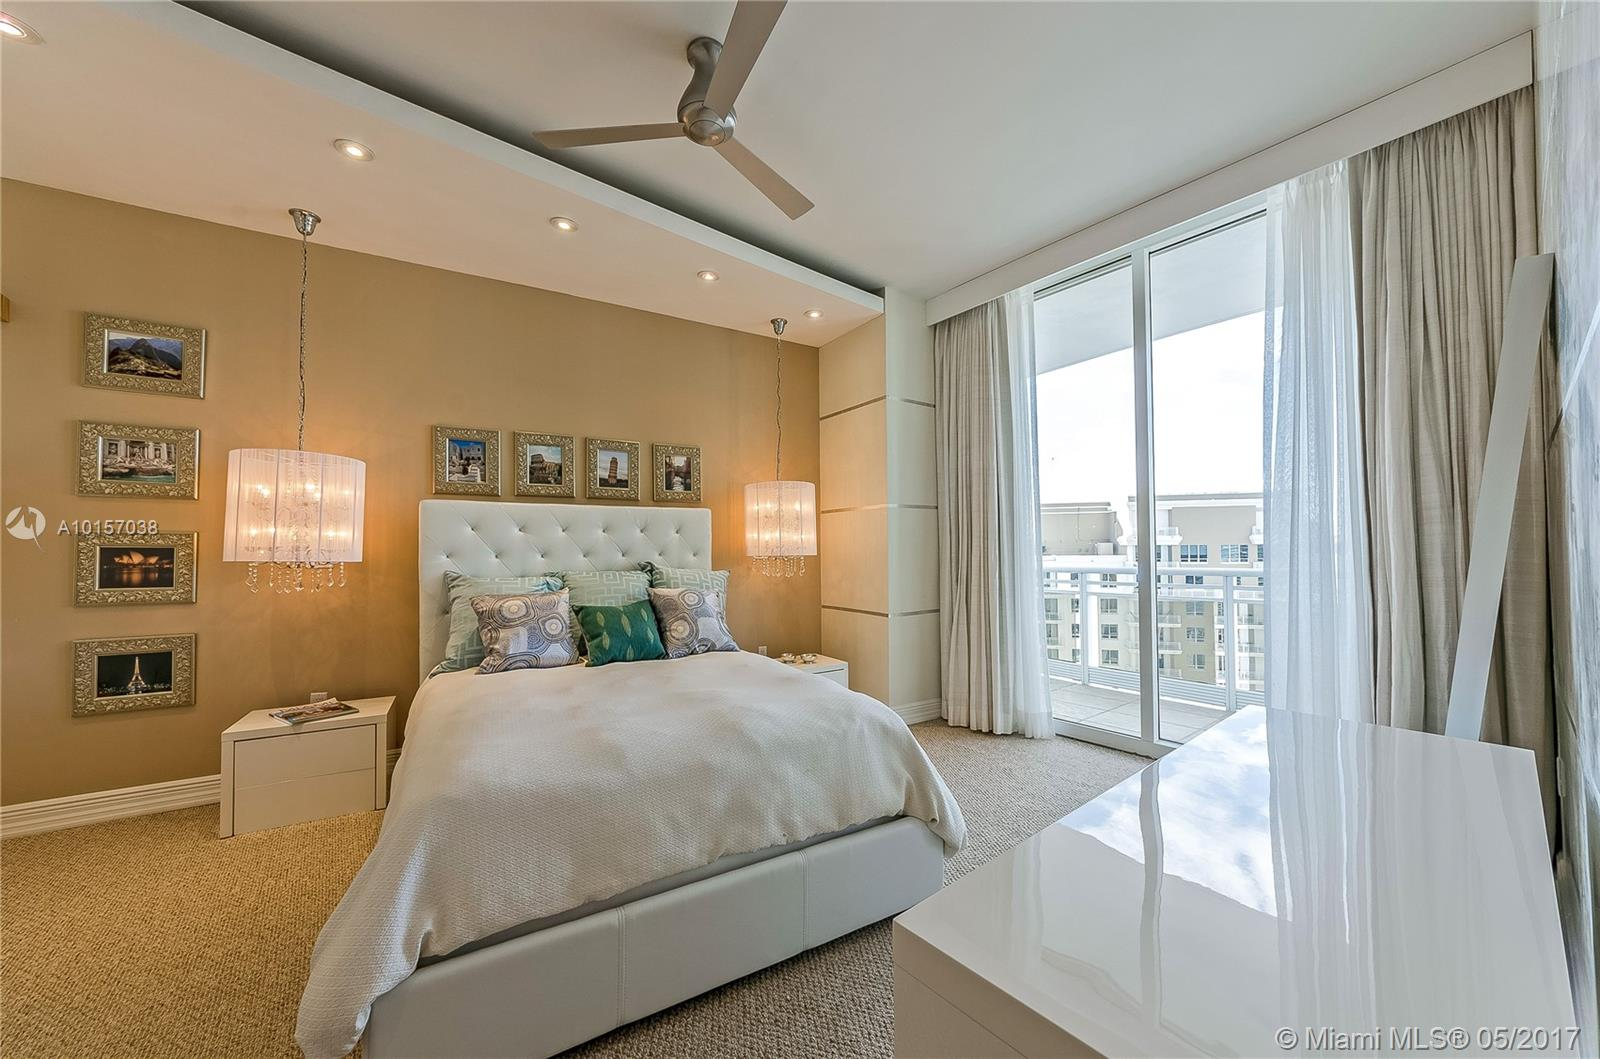 901 Brickell key blvd-3401 miami--fl-33131-a10157038-Pic16